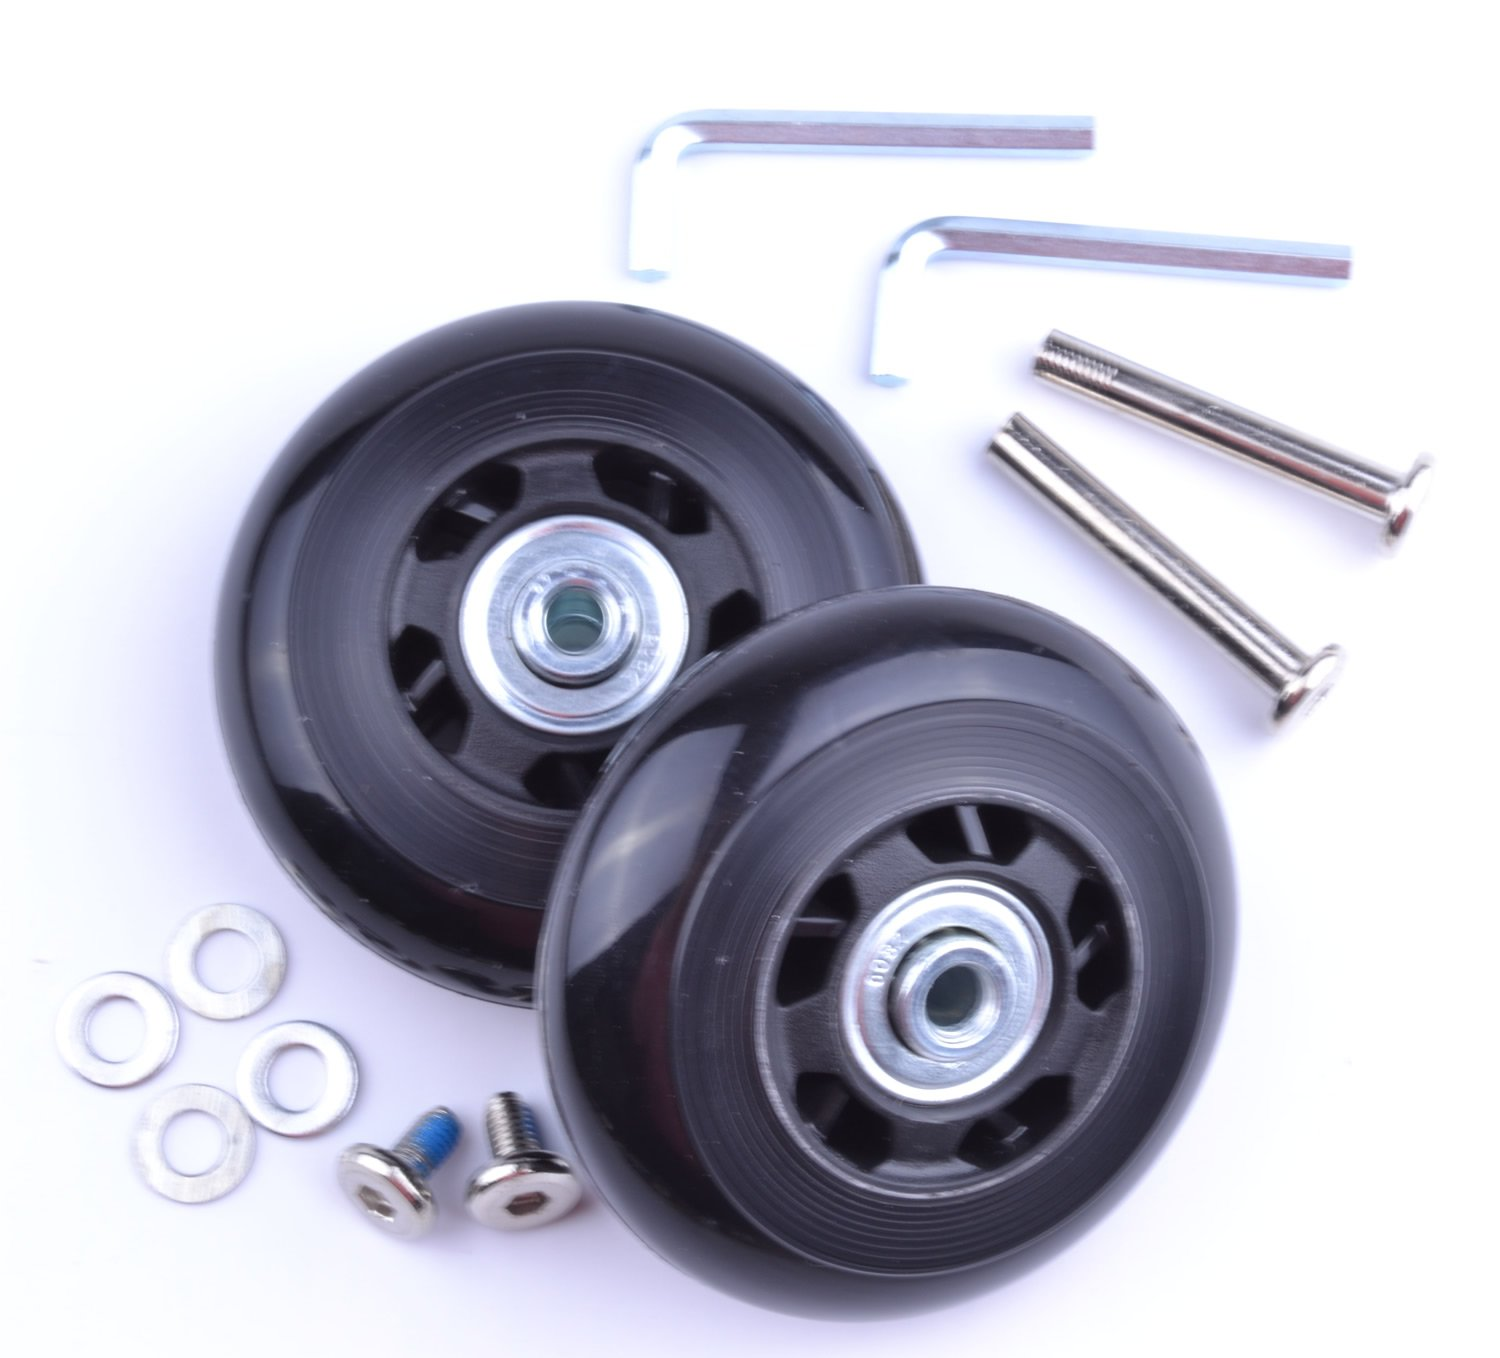 minihut 2 Set of Luggage Suitcase Replacement Wheels With Repair Kit Axles Deluxe by vomvomp